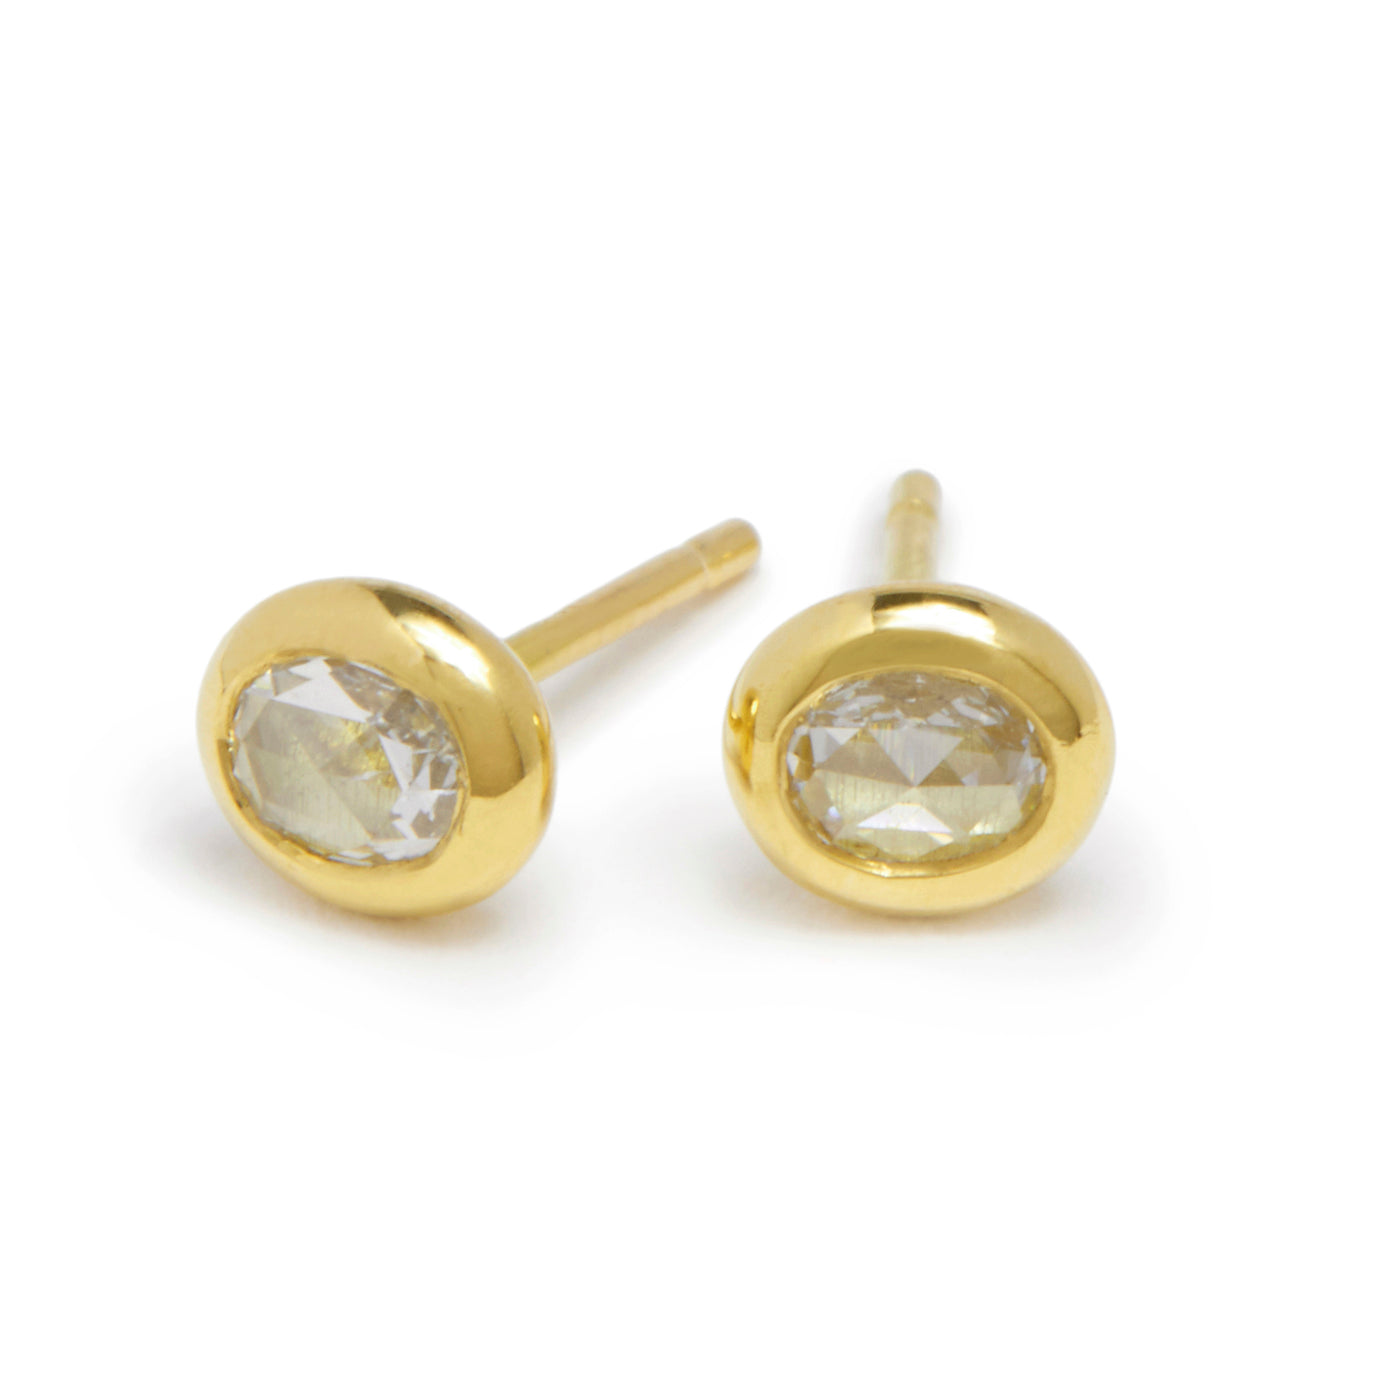 tiny oval rose cut diamond studs